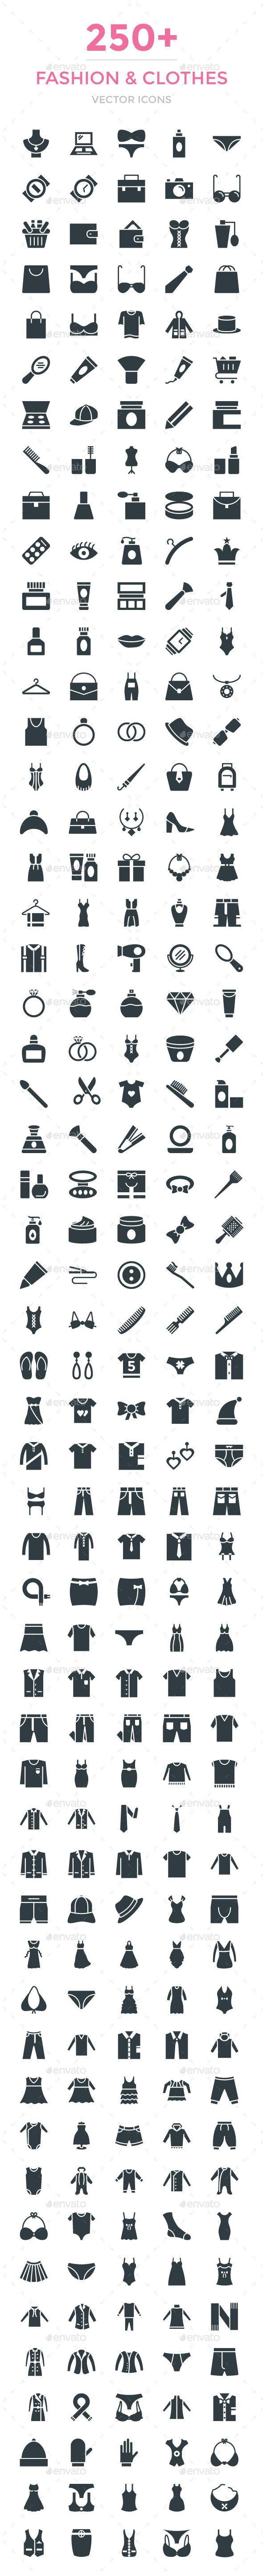 250+ Fashion and Clothes Vector Icon. Download here: https://graphicriver.net/item/250-fashion-and-clothes-vector-icon/16916694?ref=ksioks